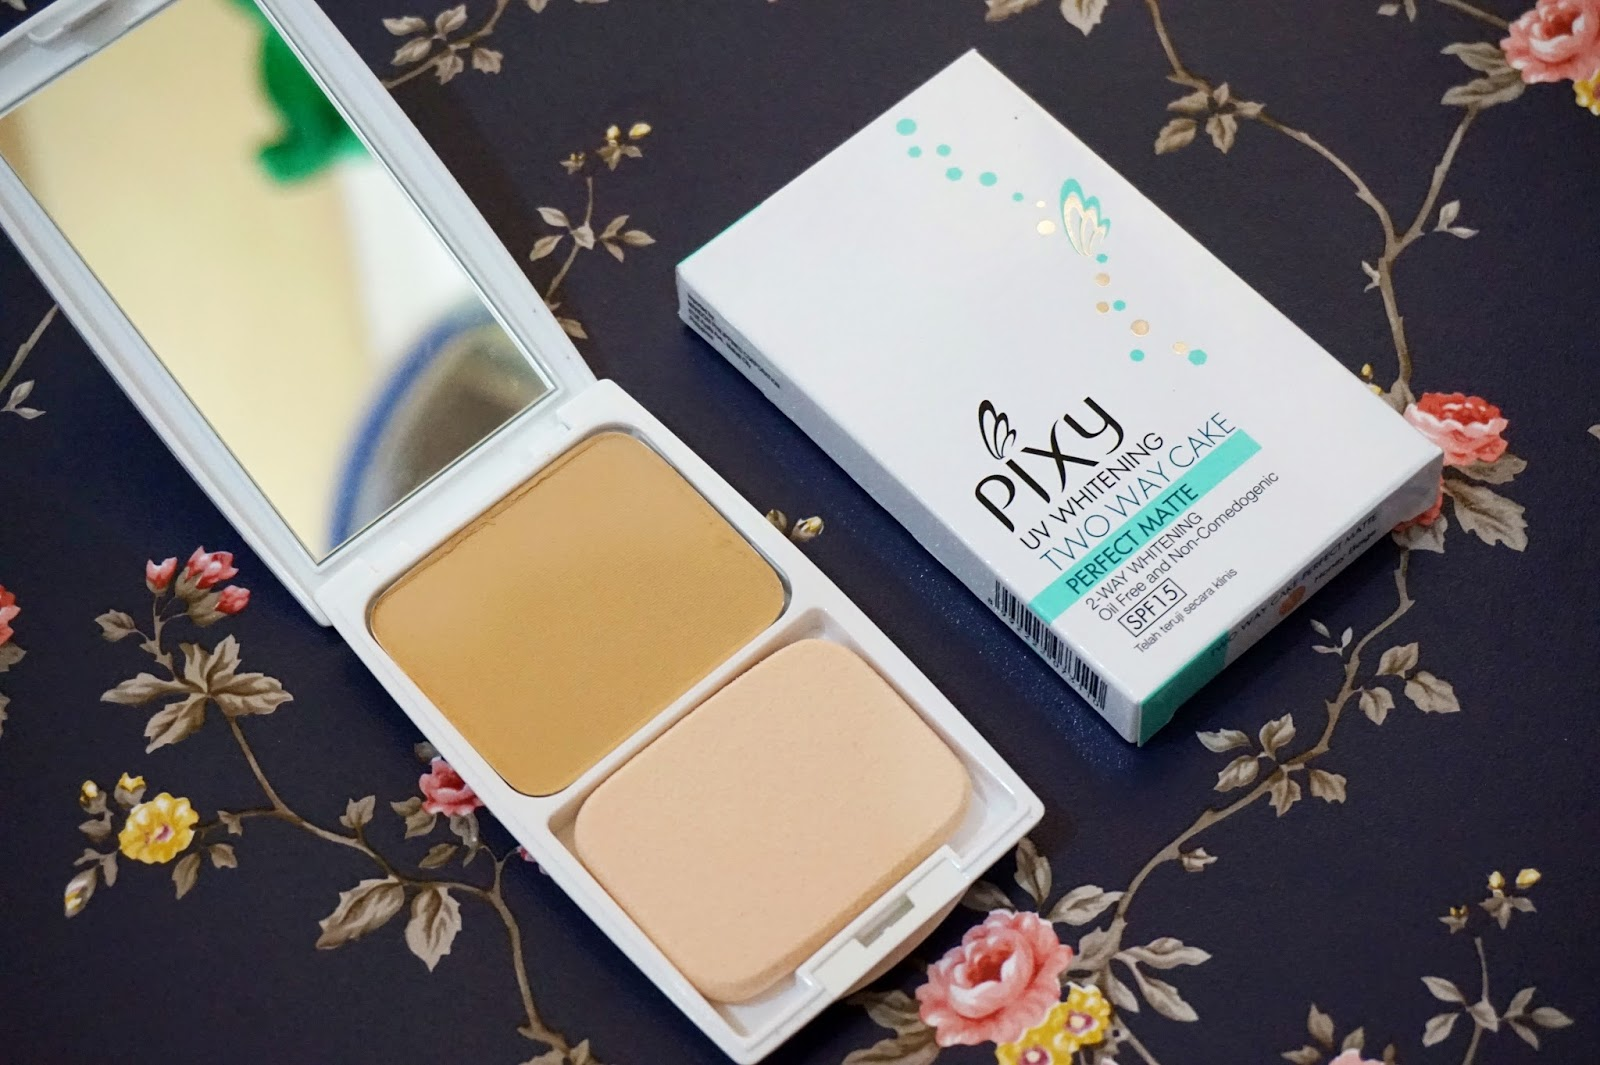 Pixy UV Whitening Two Way Cake Perfect Matte Foundation review